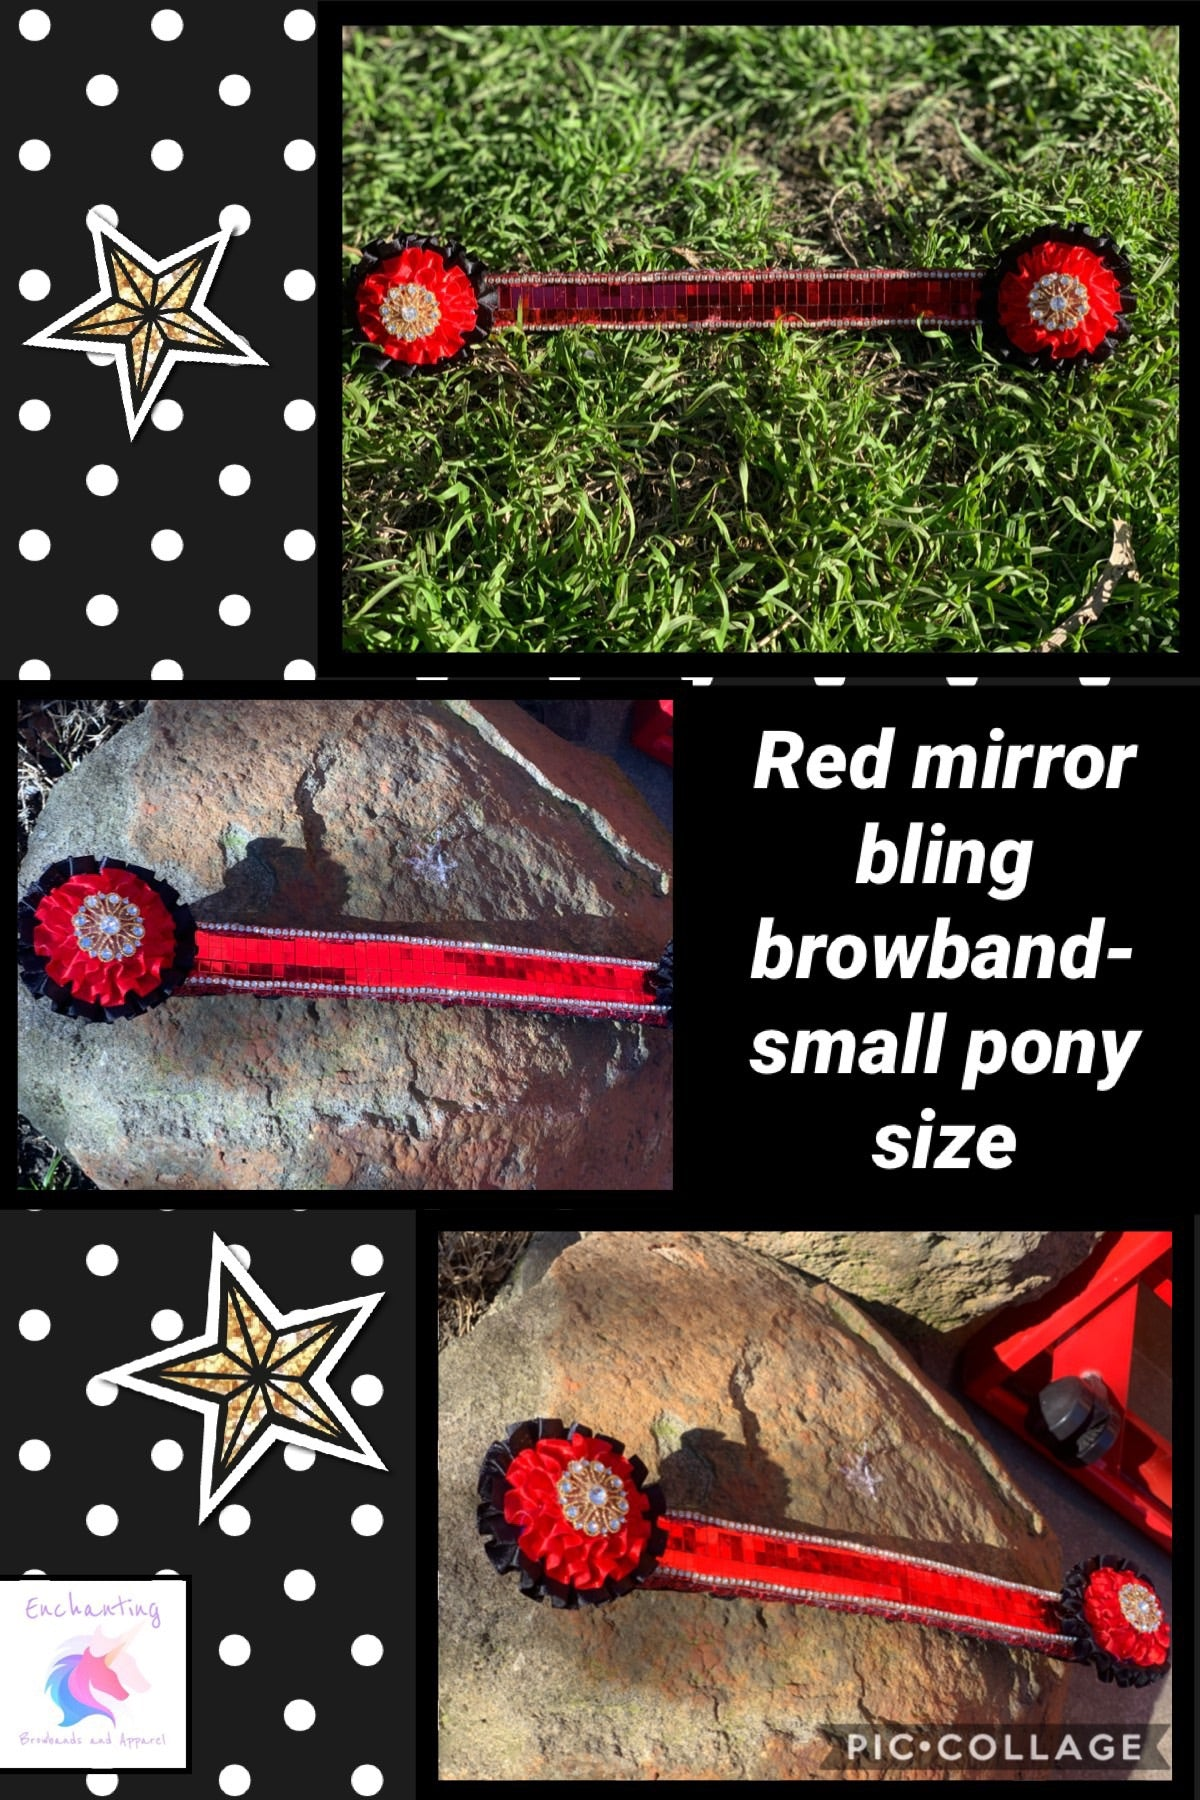 Mirror bling browband